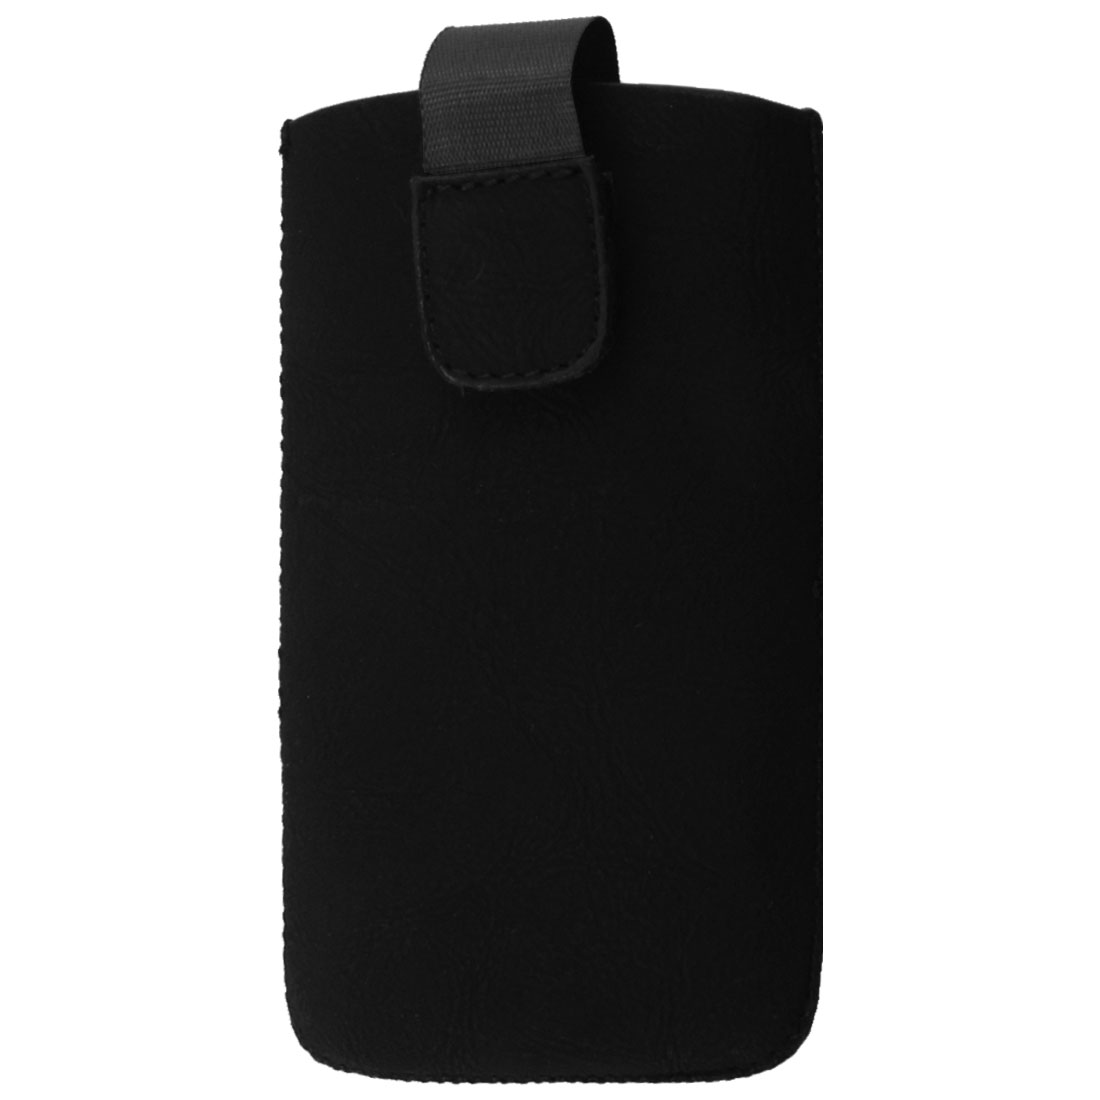 Vertical Black Faux Leather Stitched Hem Pouch for iPhone 4 4G 4S